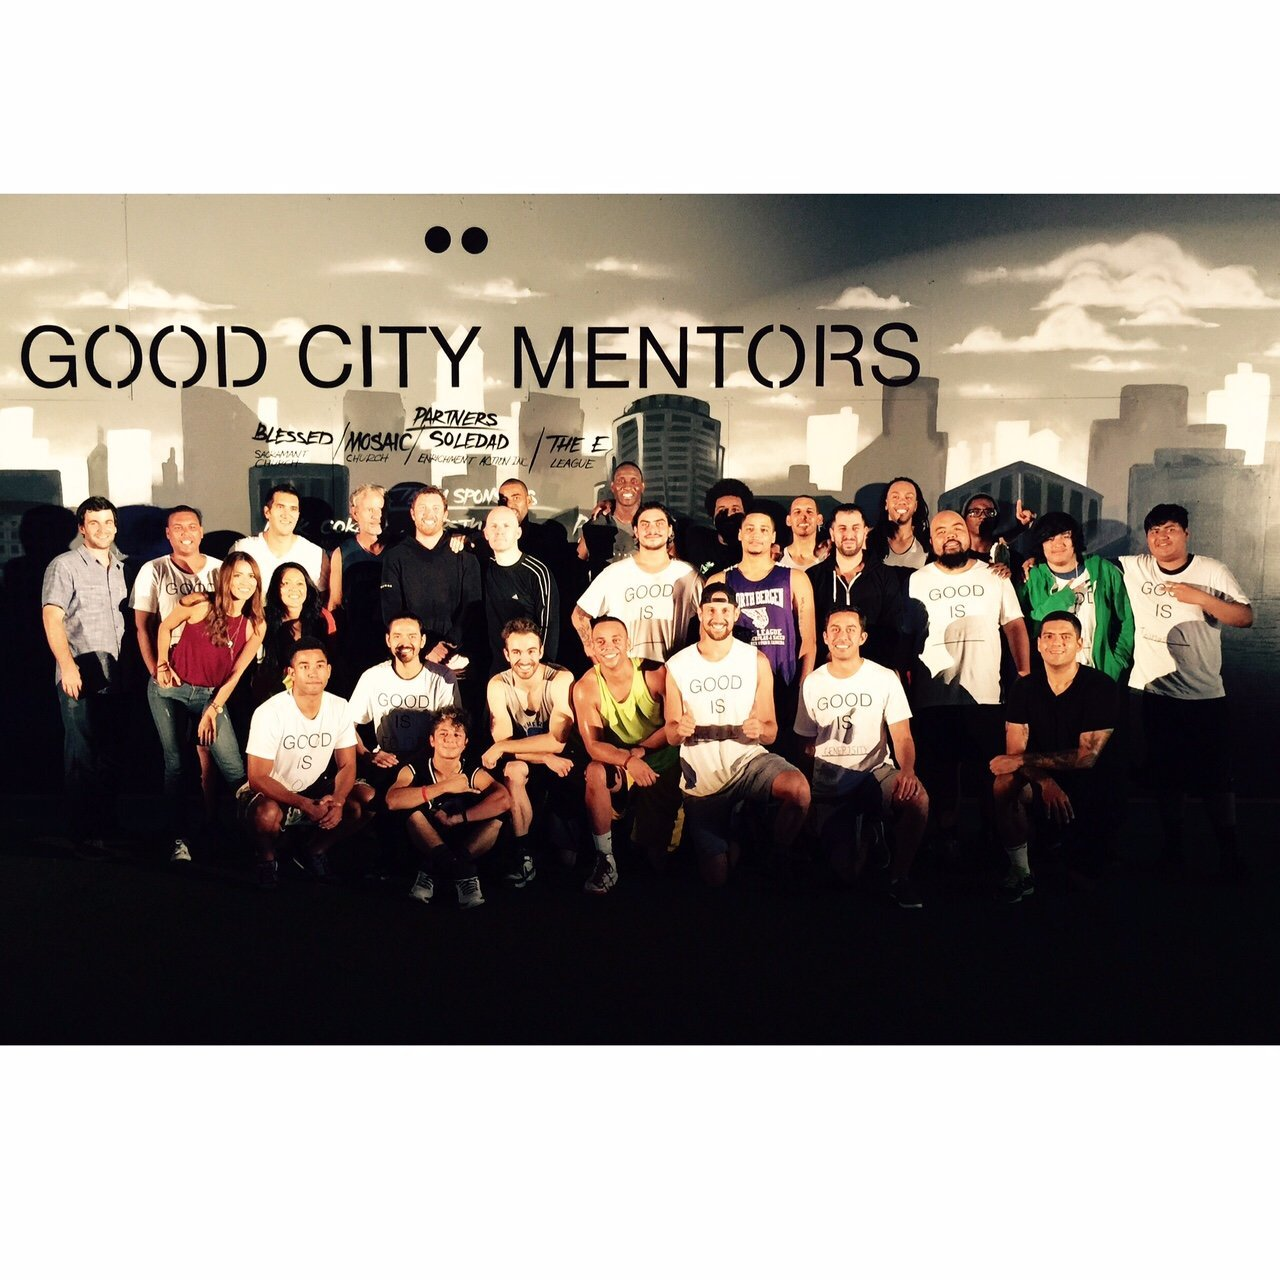 Feathered Arrow events collaborating with Good City Mentors for fundraiser